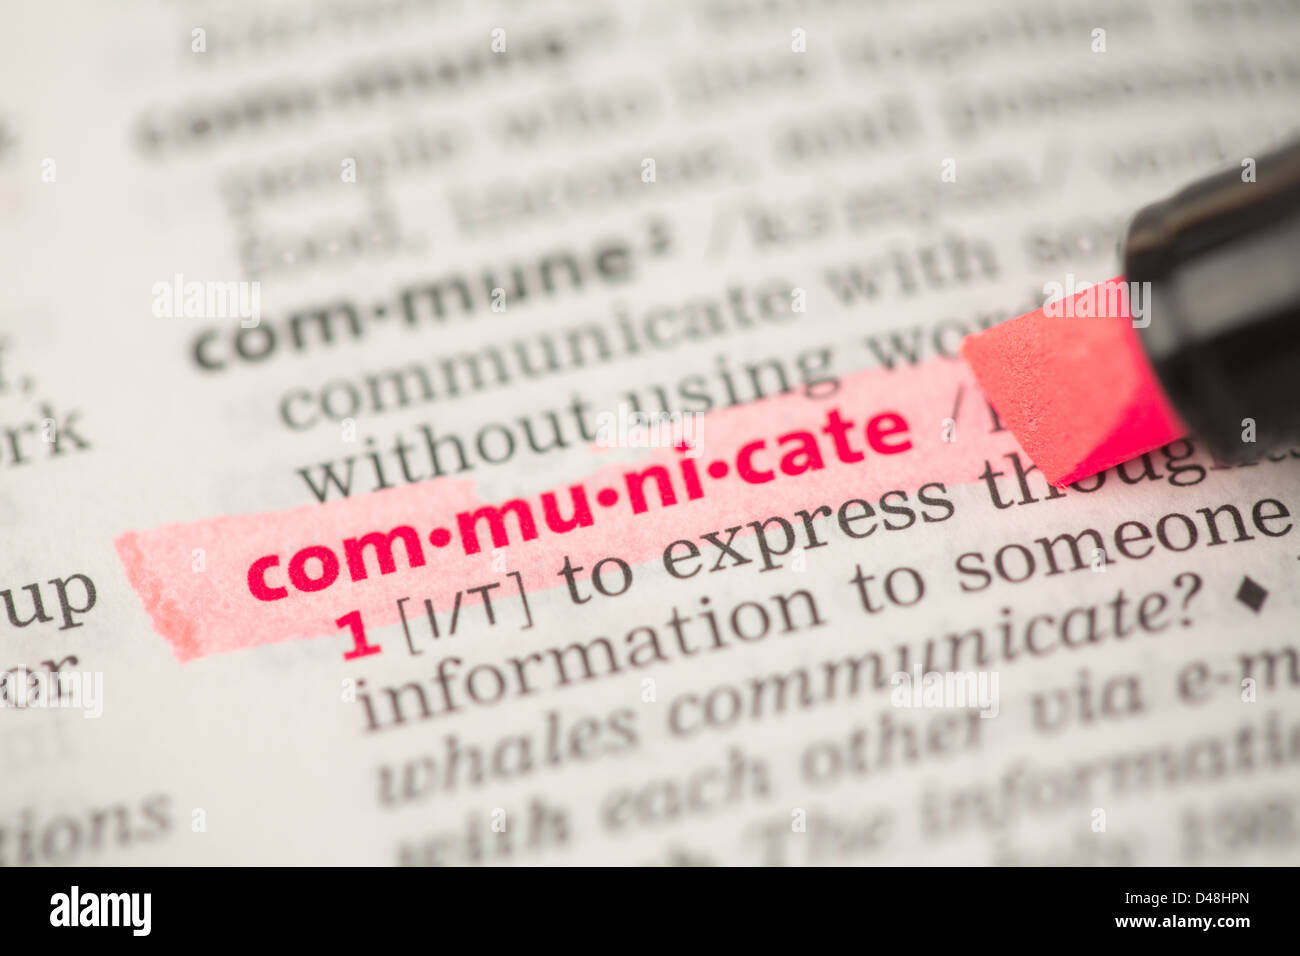 Communicate definition highlighted in red - Stock Image